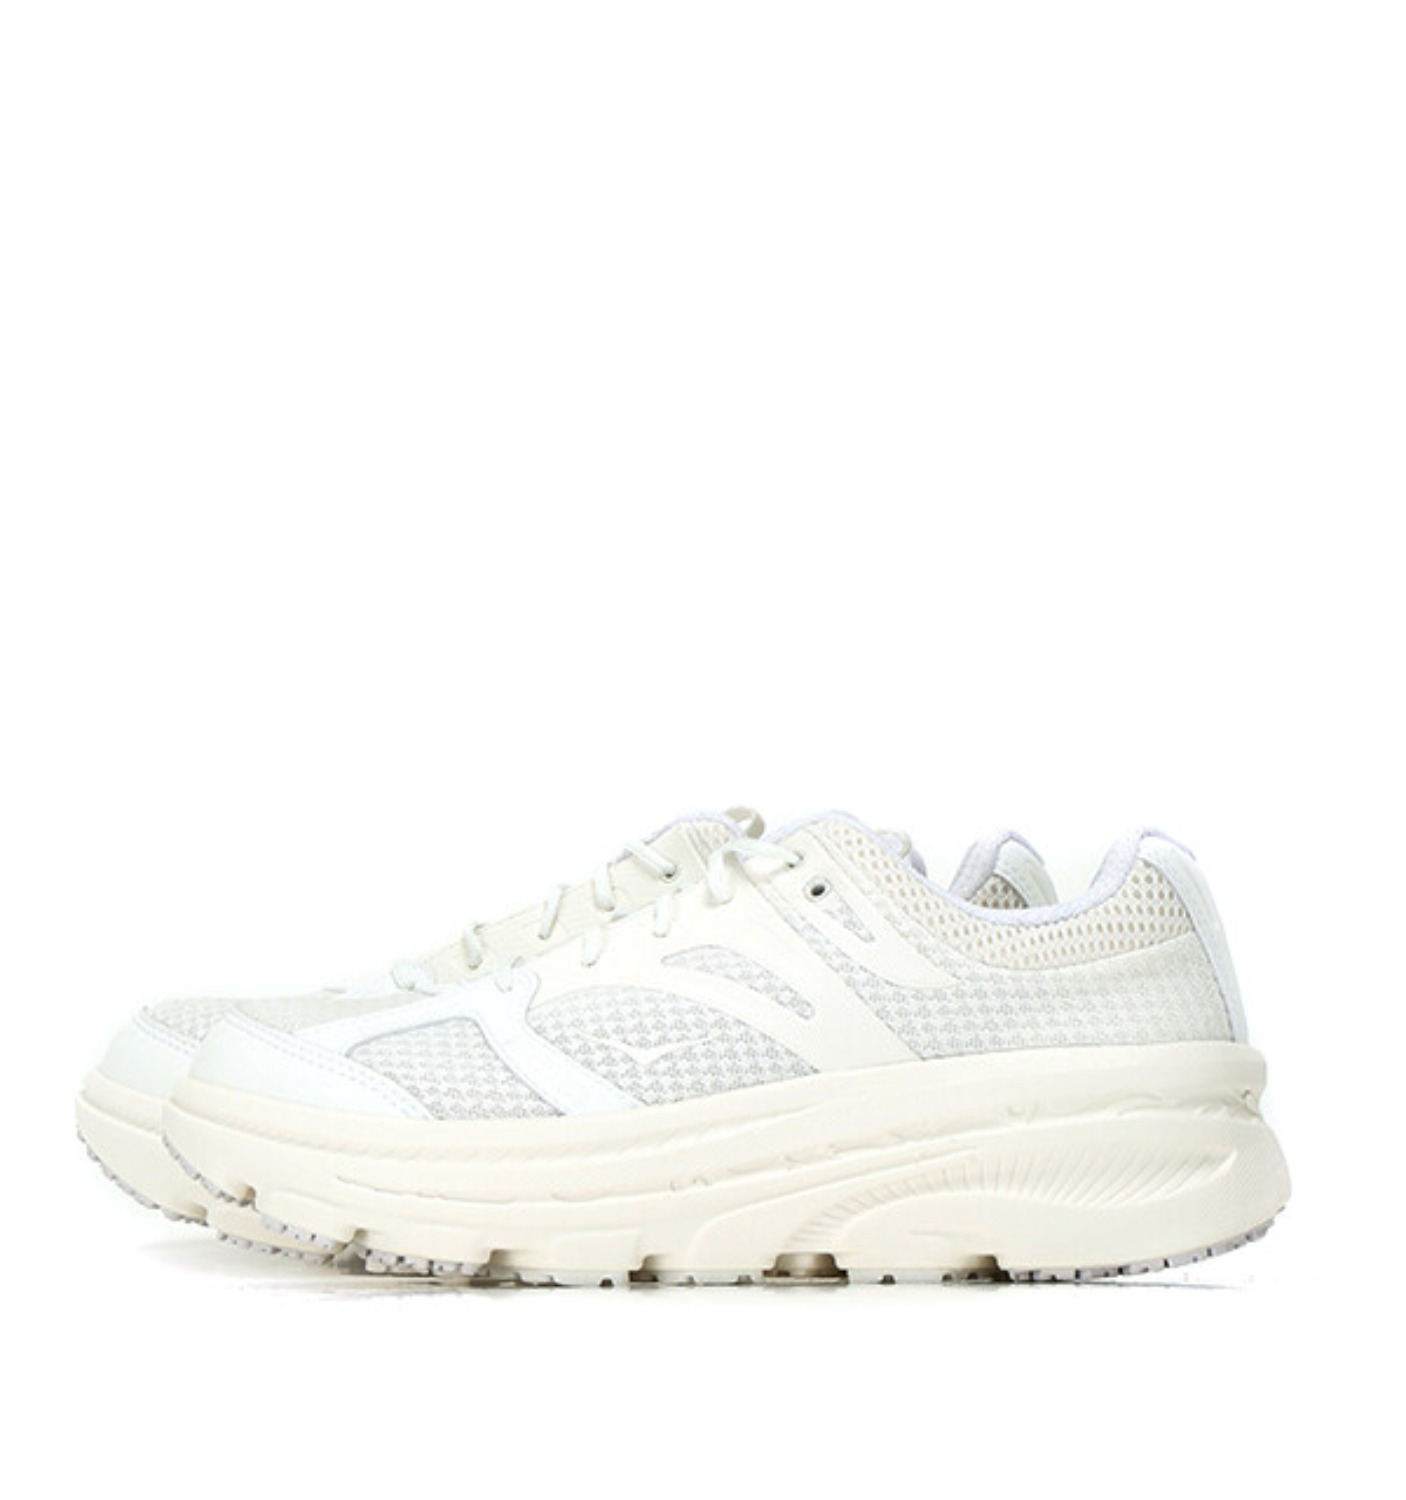 HOKA ONE ONE® X ENGINEERED GARMENTS BONDI B WHITE